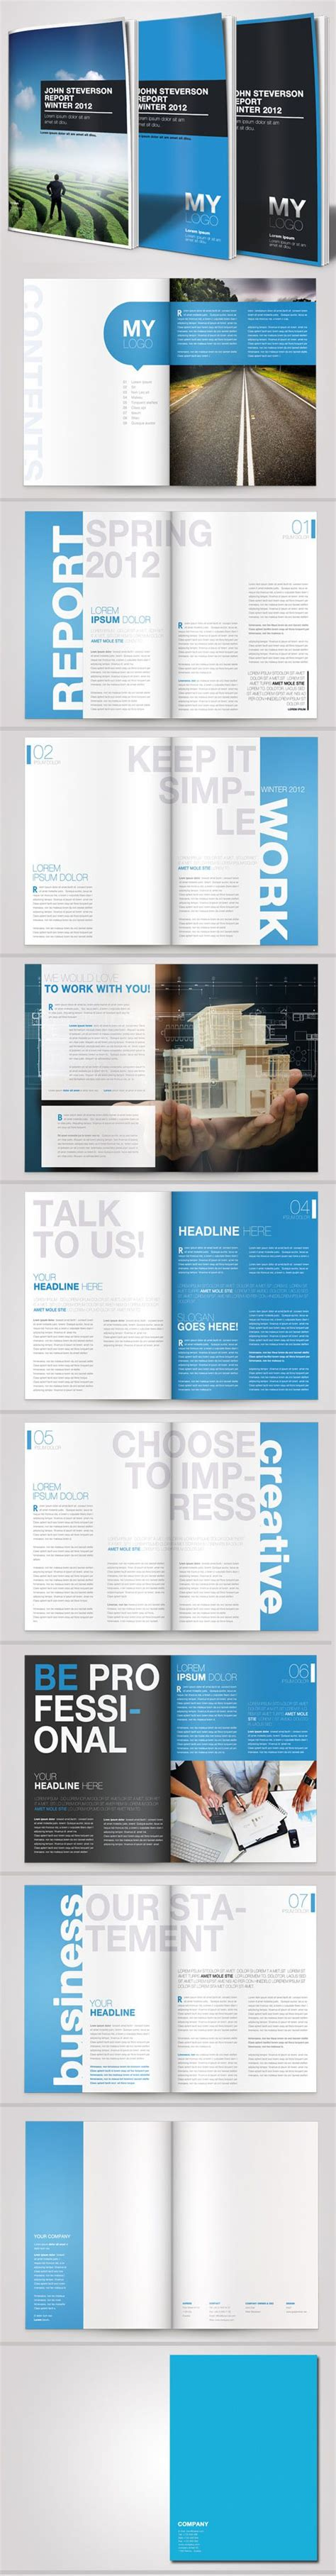 193 best brochure design layout images on pinterest business brochure product brochure template business